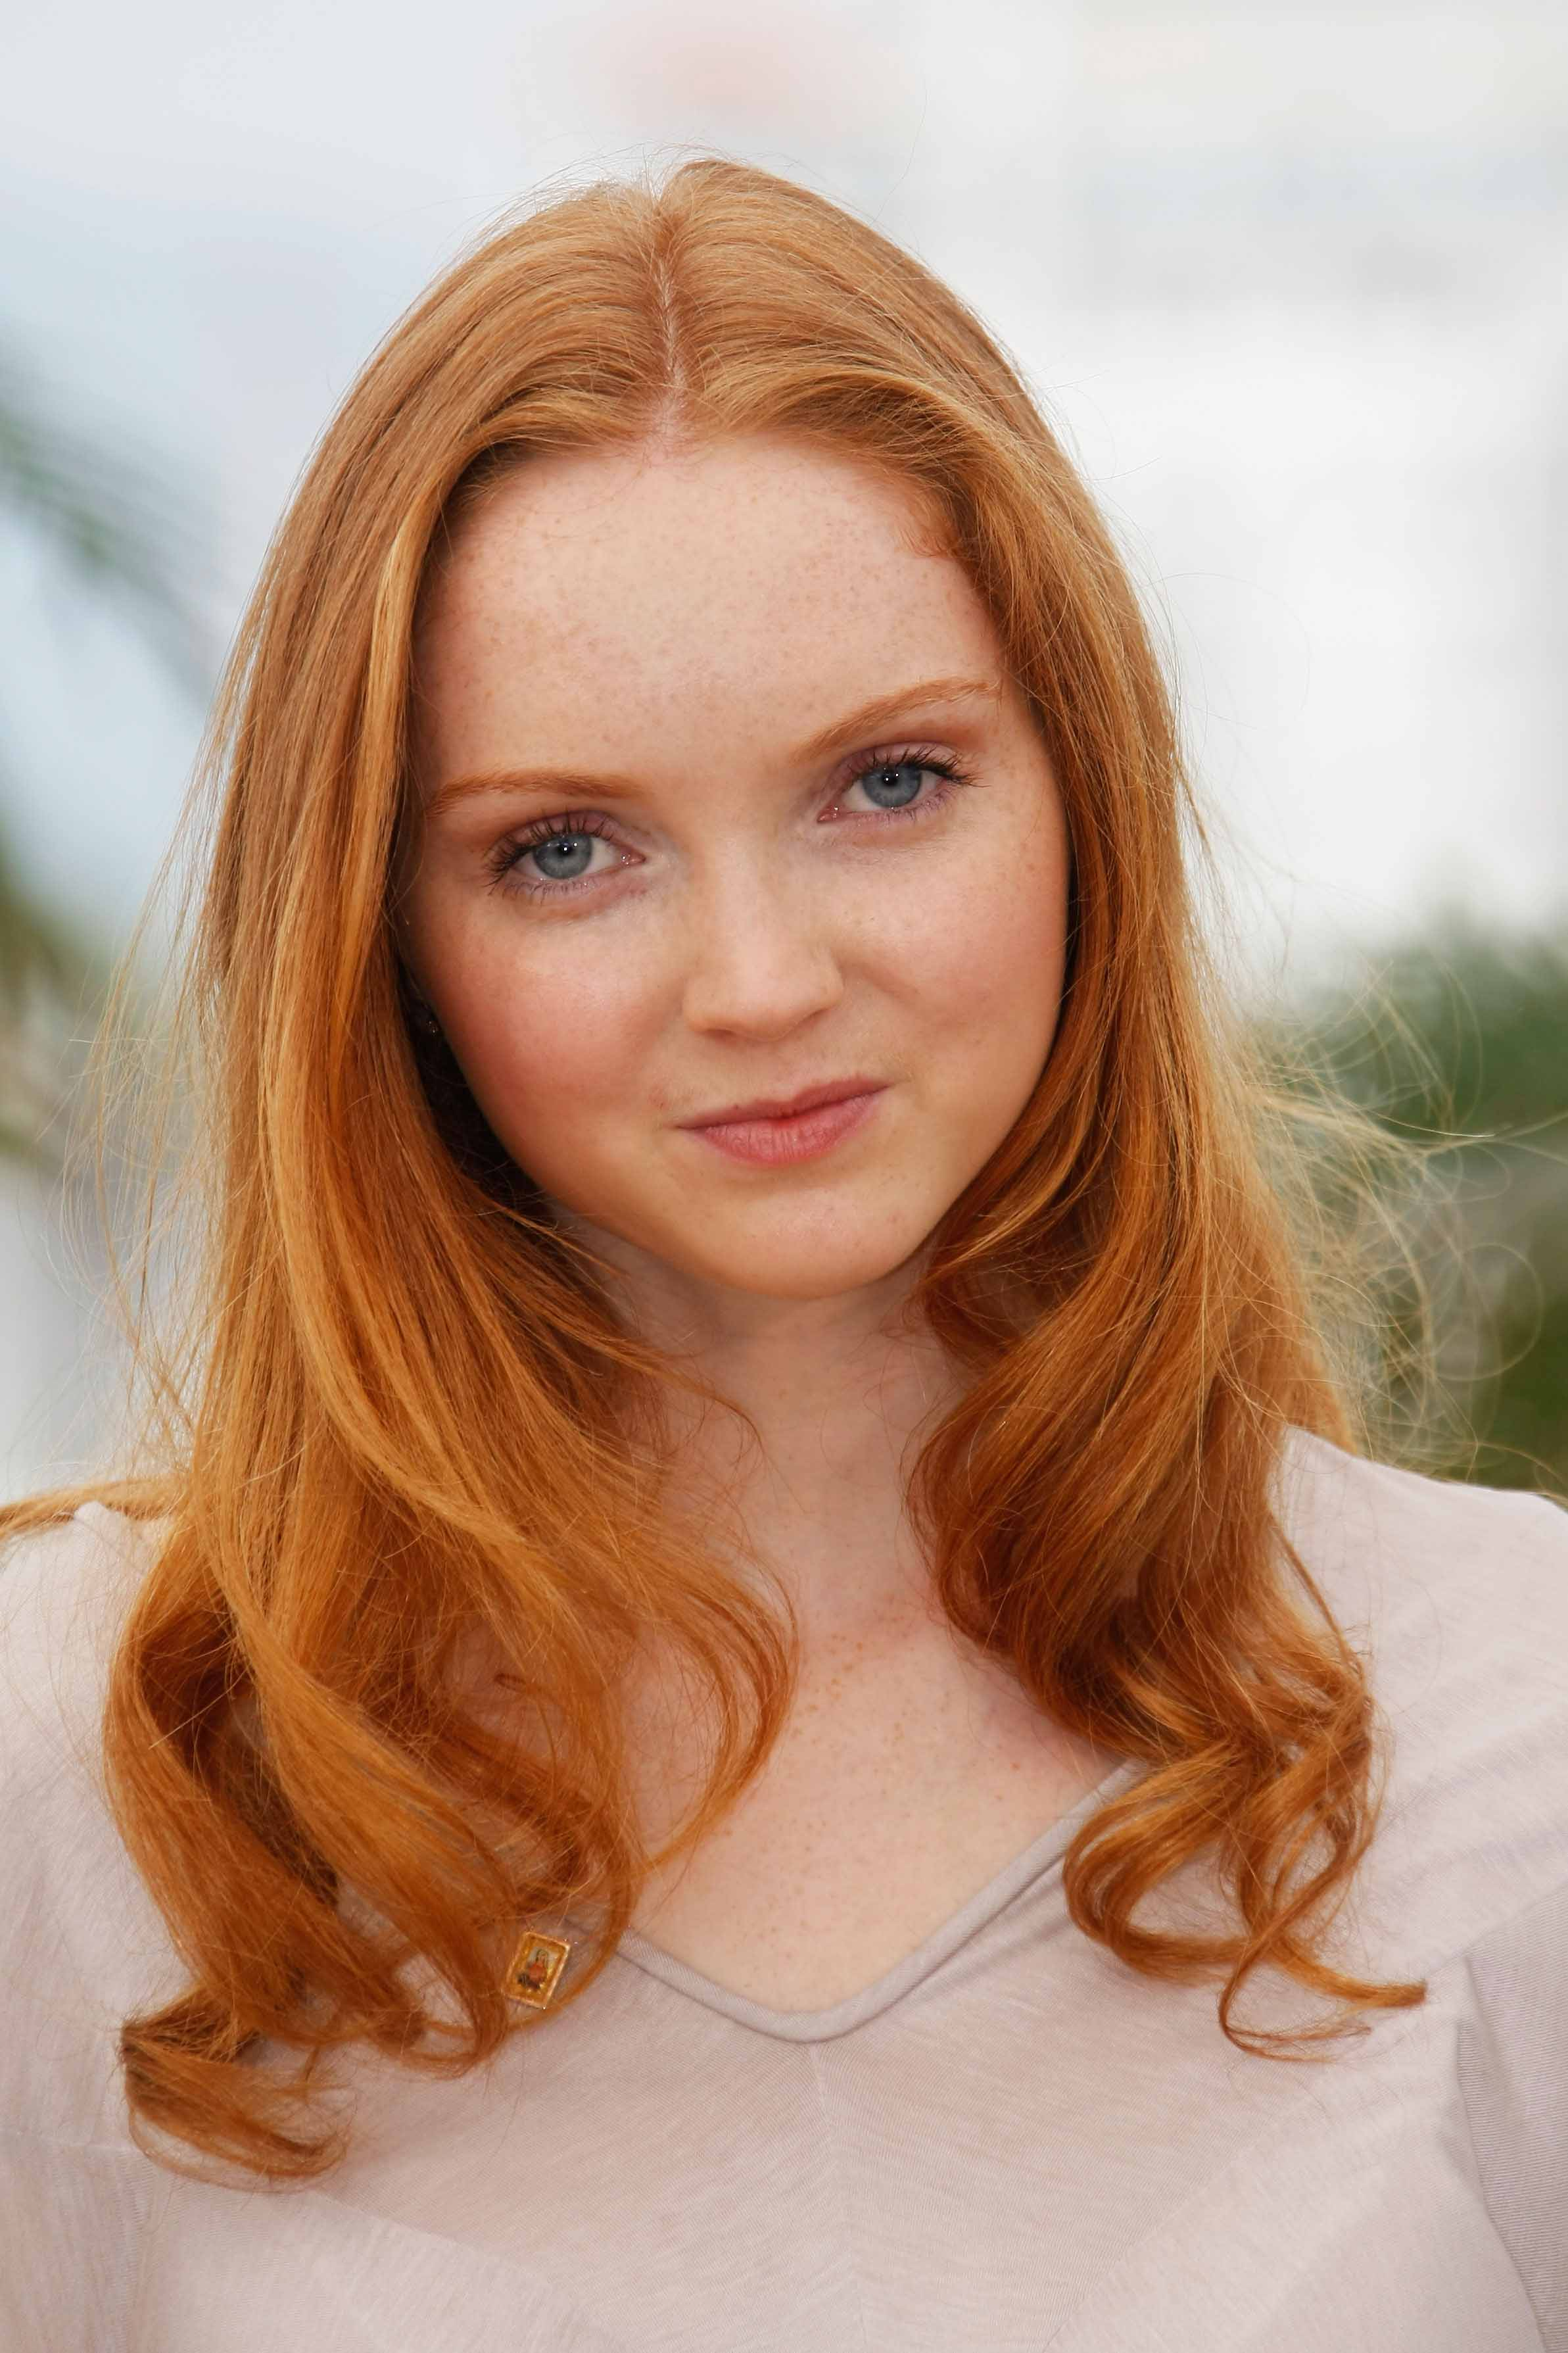 21 Iconic Redheads - Famous Celebs With Red Hair | All Things Hair UK